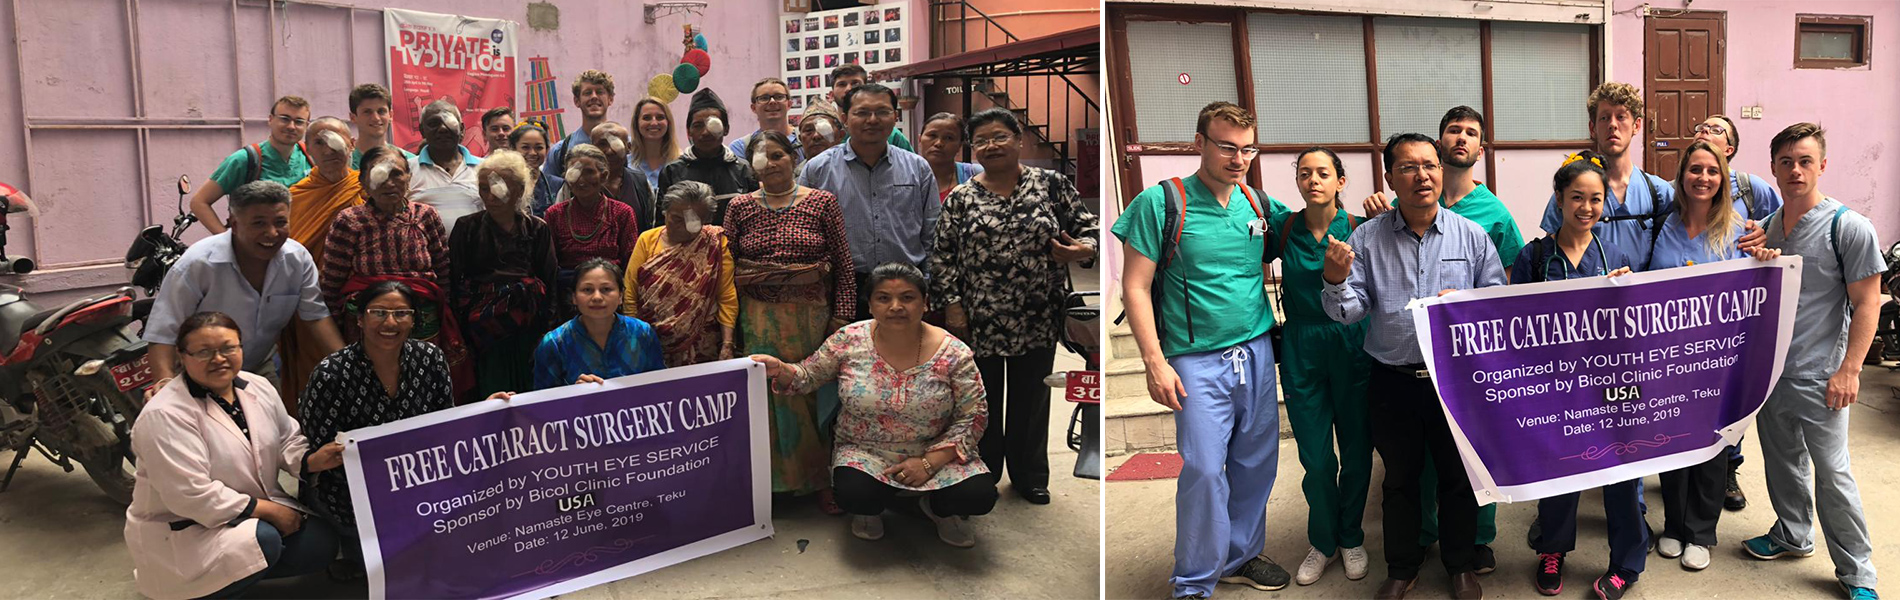 2019 Free Cataract Surgery Camp